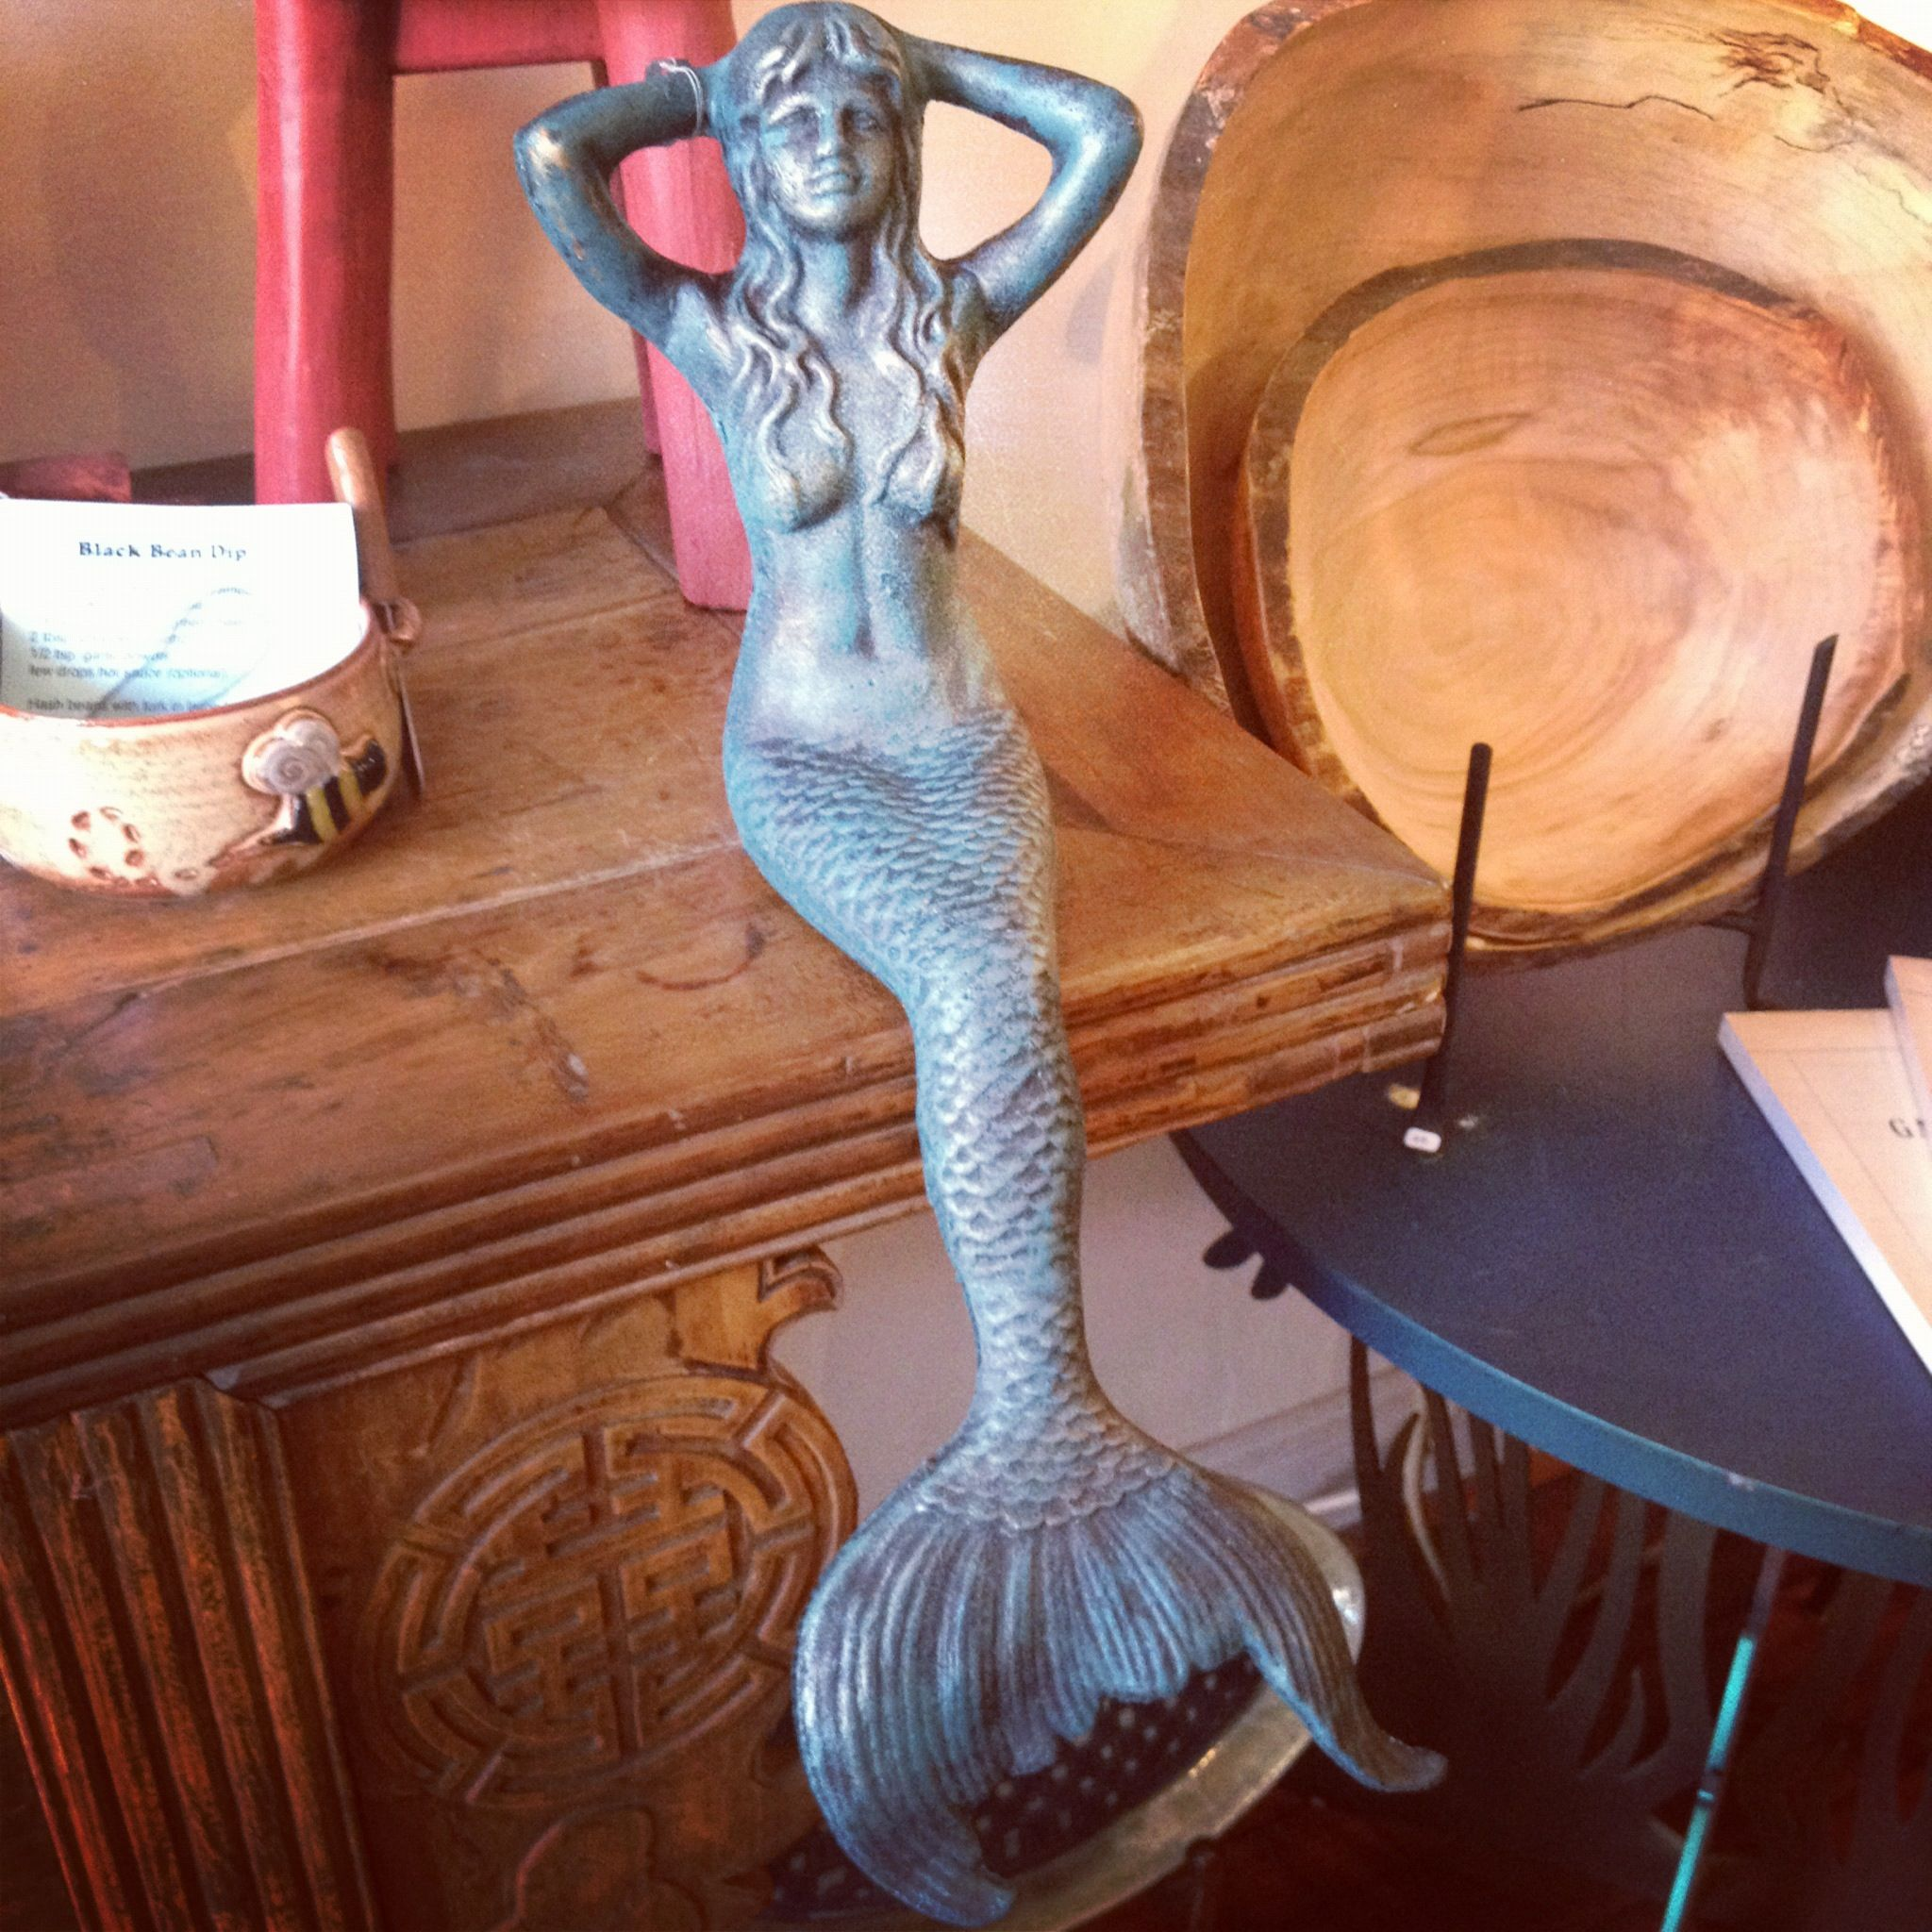 New teal & Gold glimmer mermaids now available at Diving Cat Studio Gallery in Phoenixville, PA; www.divingcatstudio.com